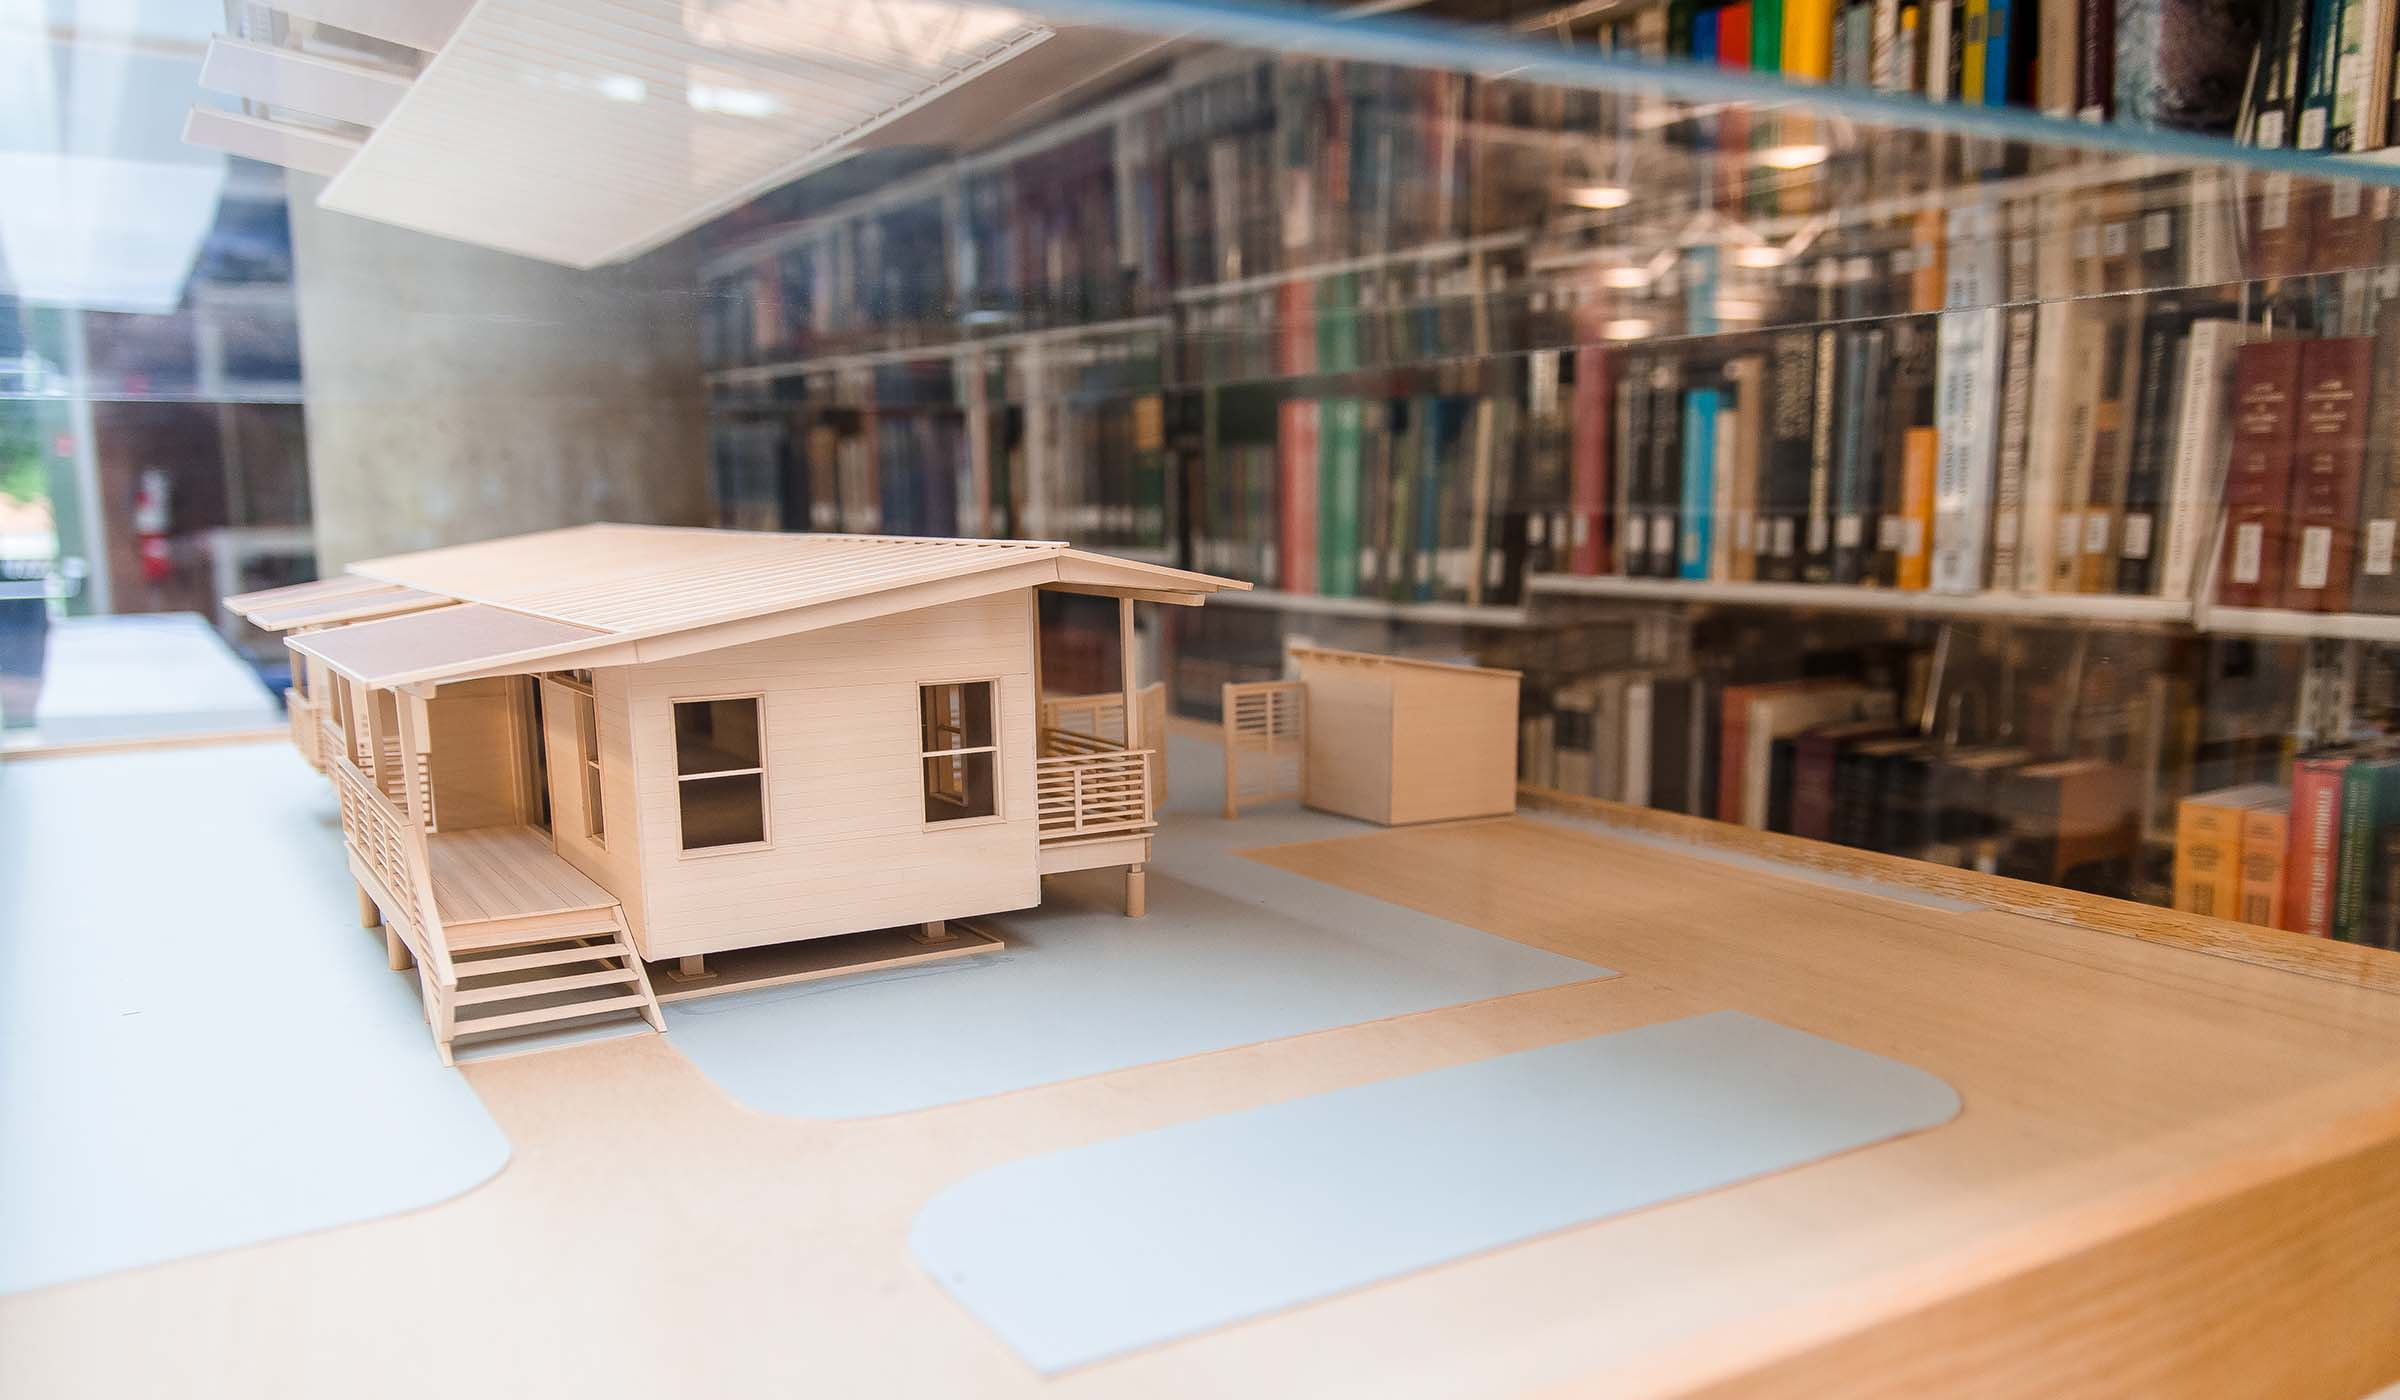 Architectural model on display in the library.